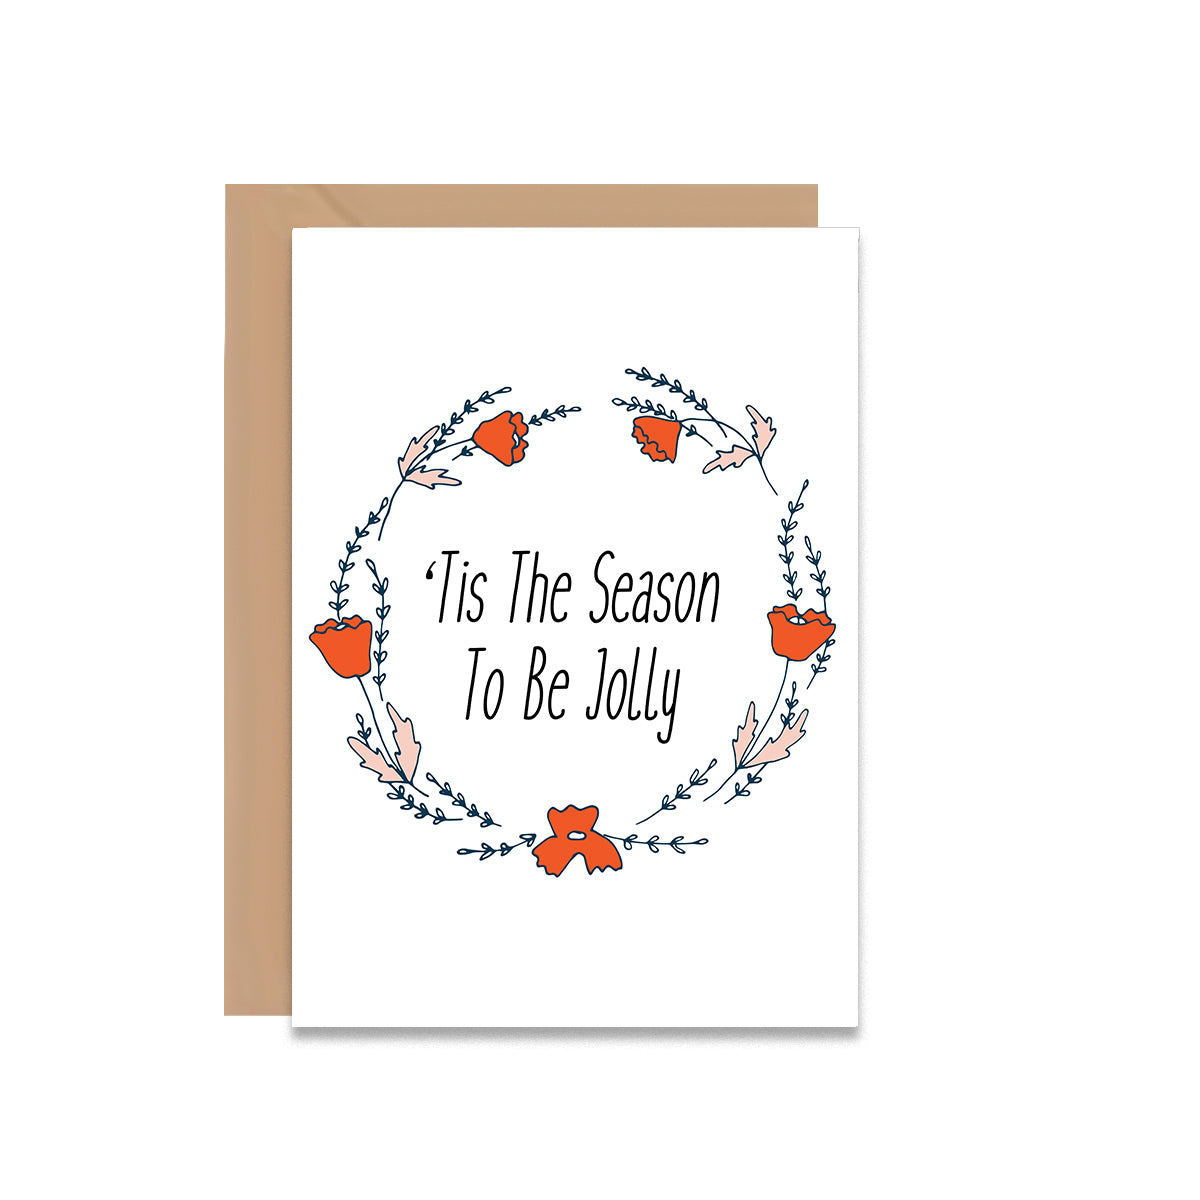 Tis The Season To Be Jolly Christmas Greeting Card